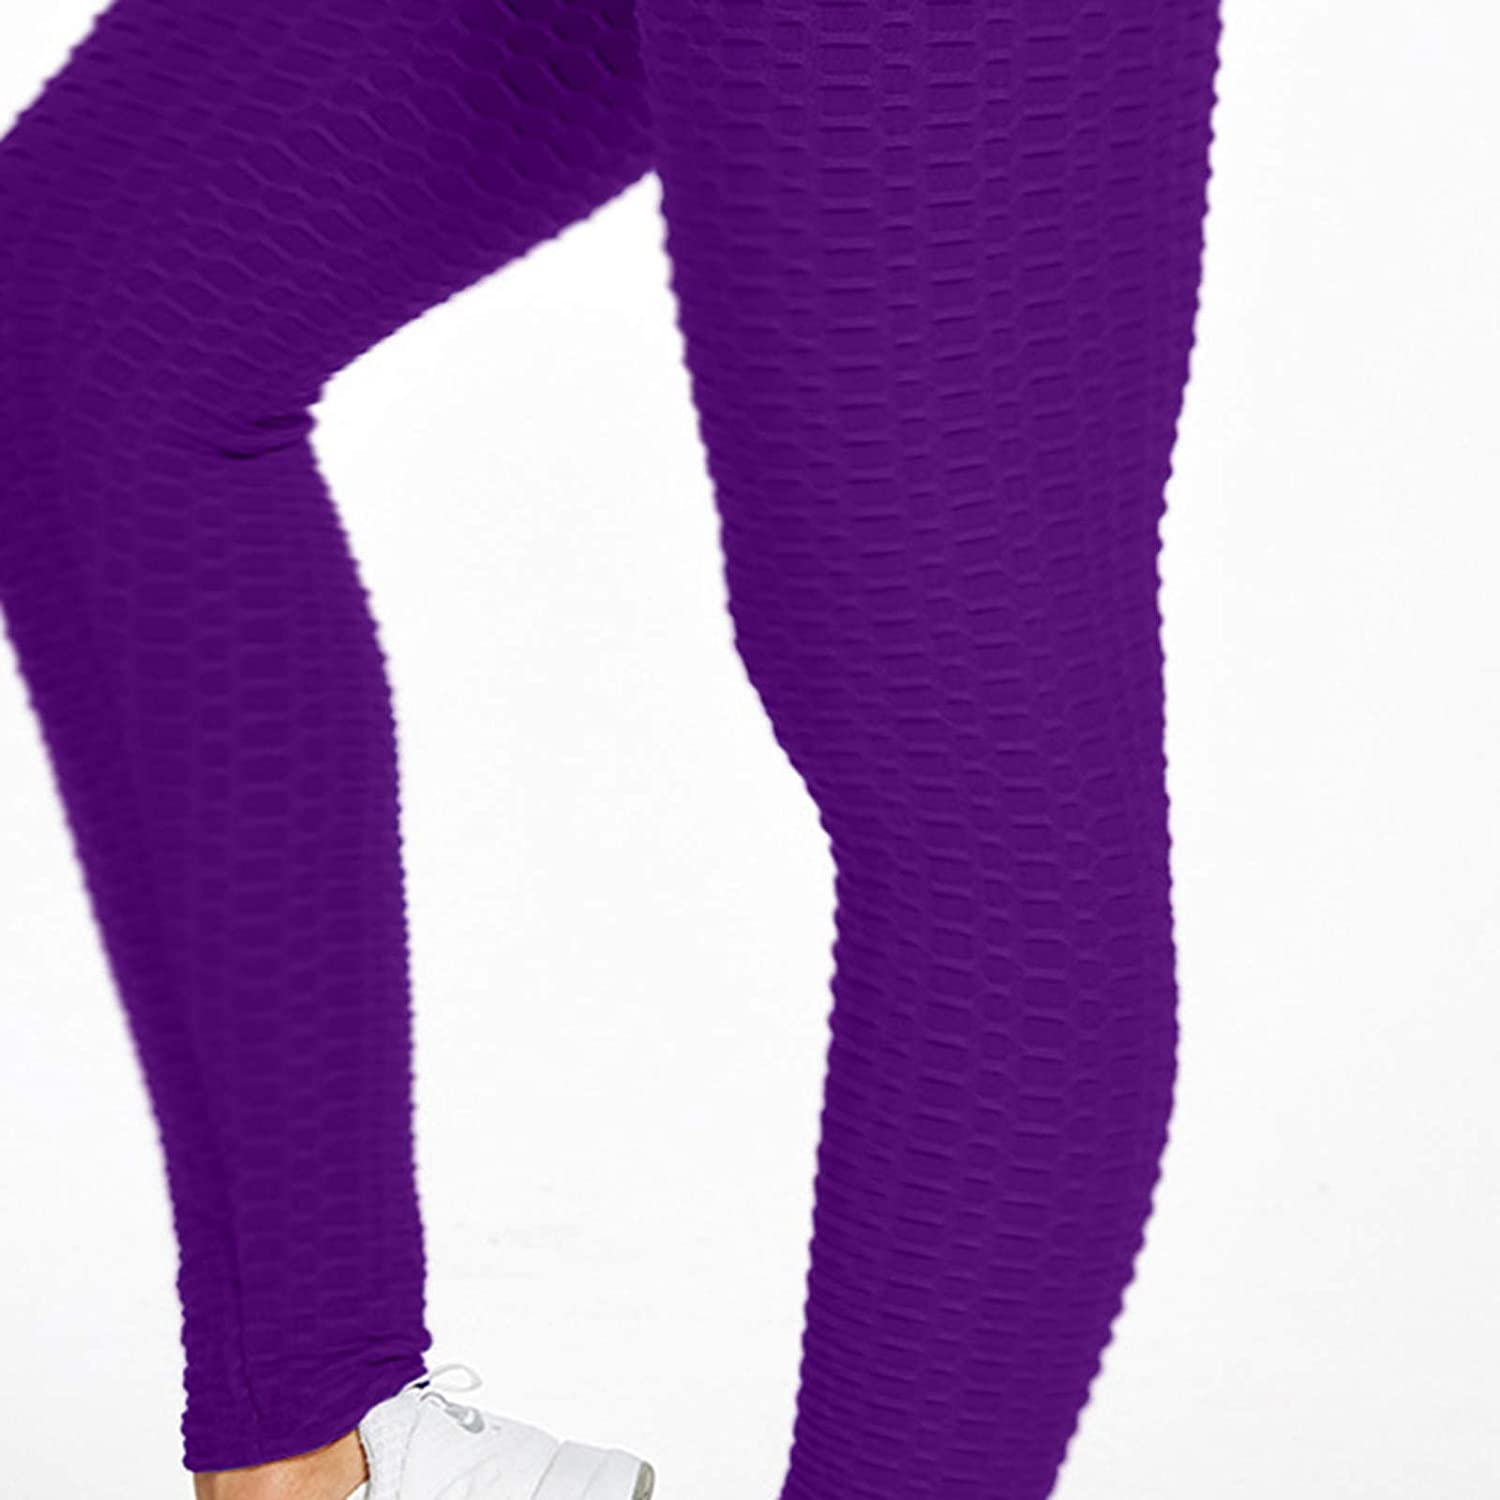 TIK Tok Leggings Womens Buble Hip High Waist Bubble Butt Lifting Fitness Yoga Pants Anti Cellulite Ruched Waffle Legging Bubble Textured Workout Tummy Control Gym Tights